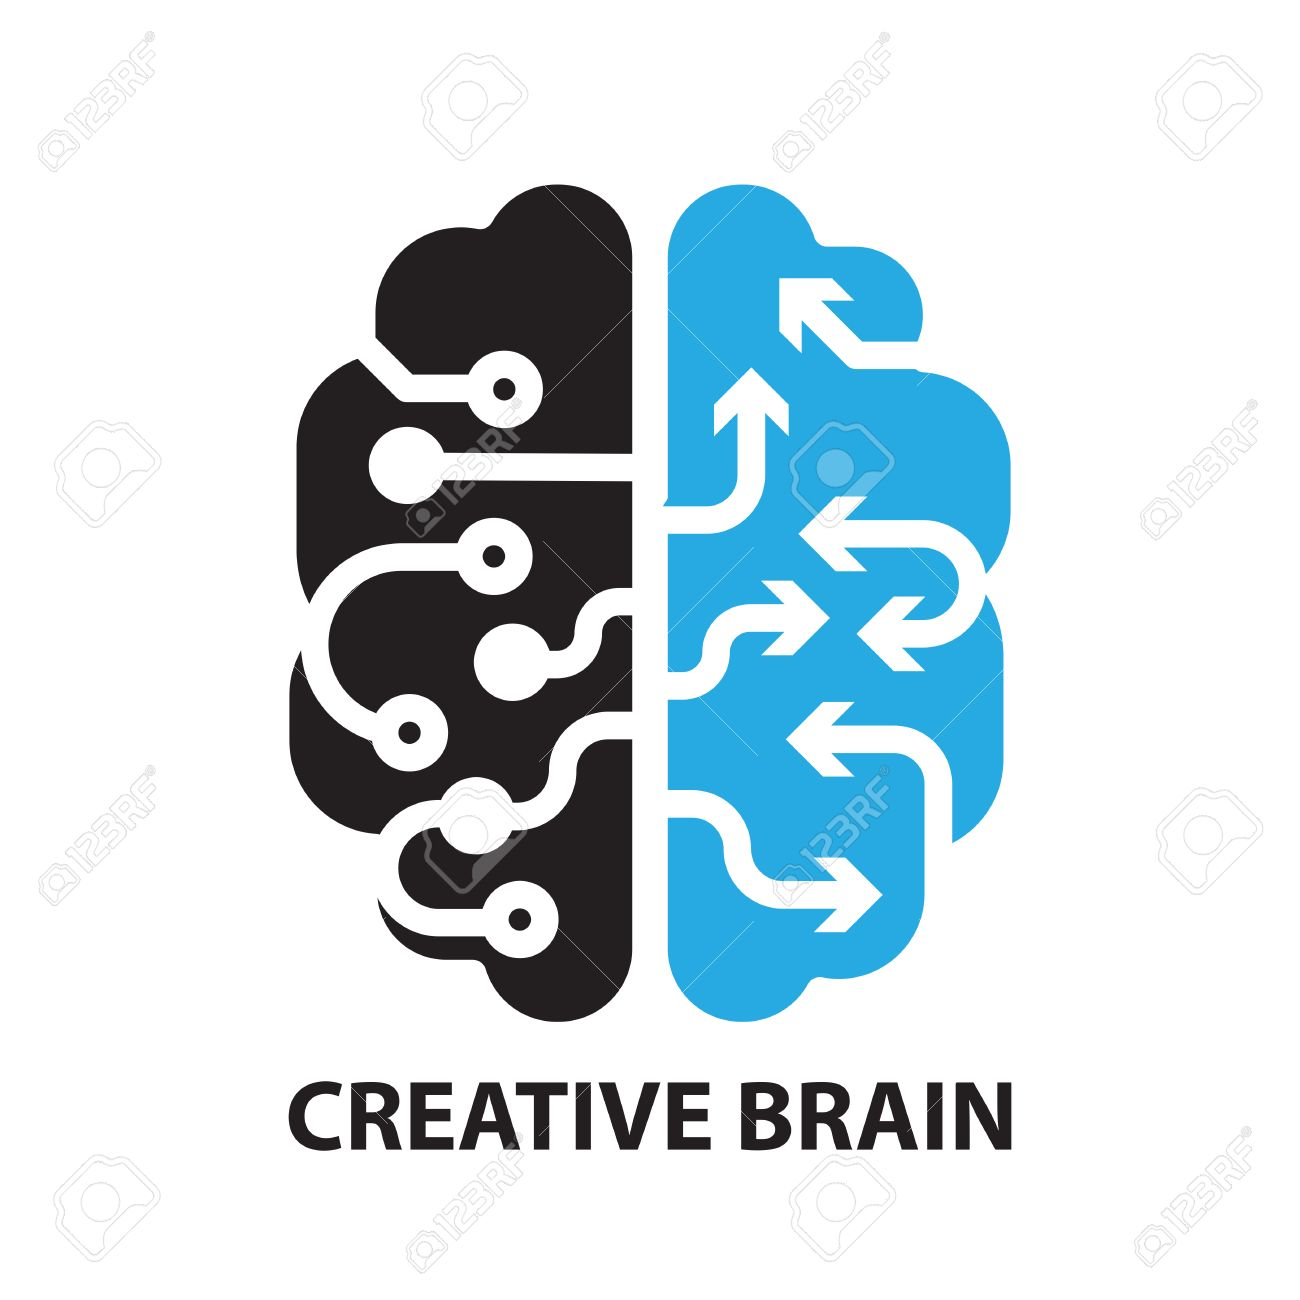 Creative brain icon and symbol royalty free cliparts vectors and creative brain icon and symbol stock vector 58946042 biocorpaavc Images